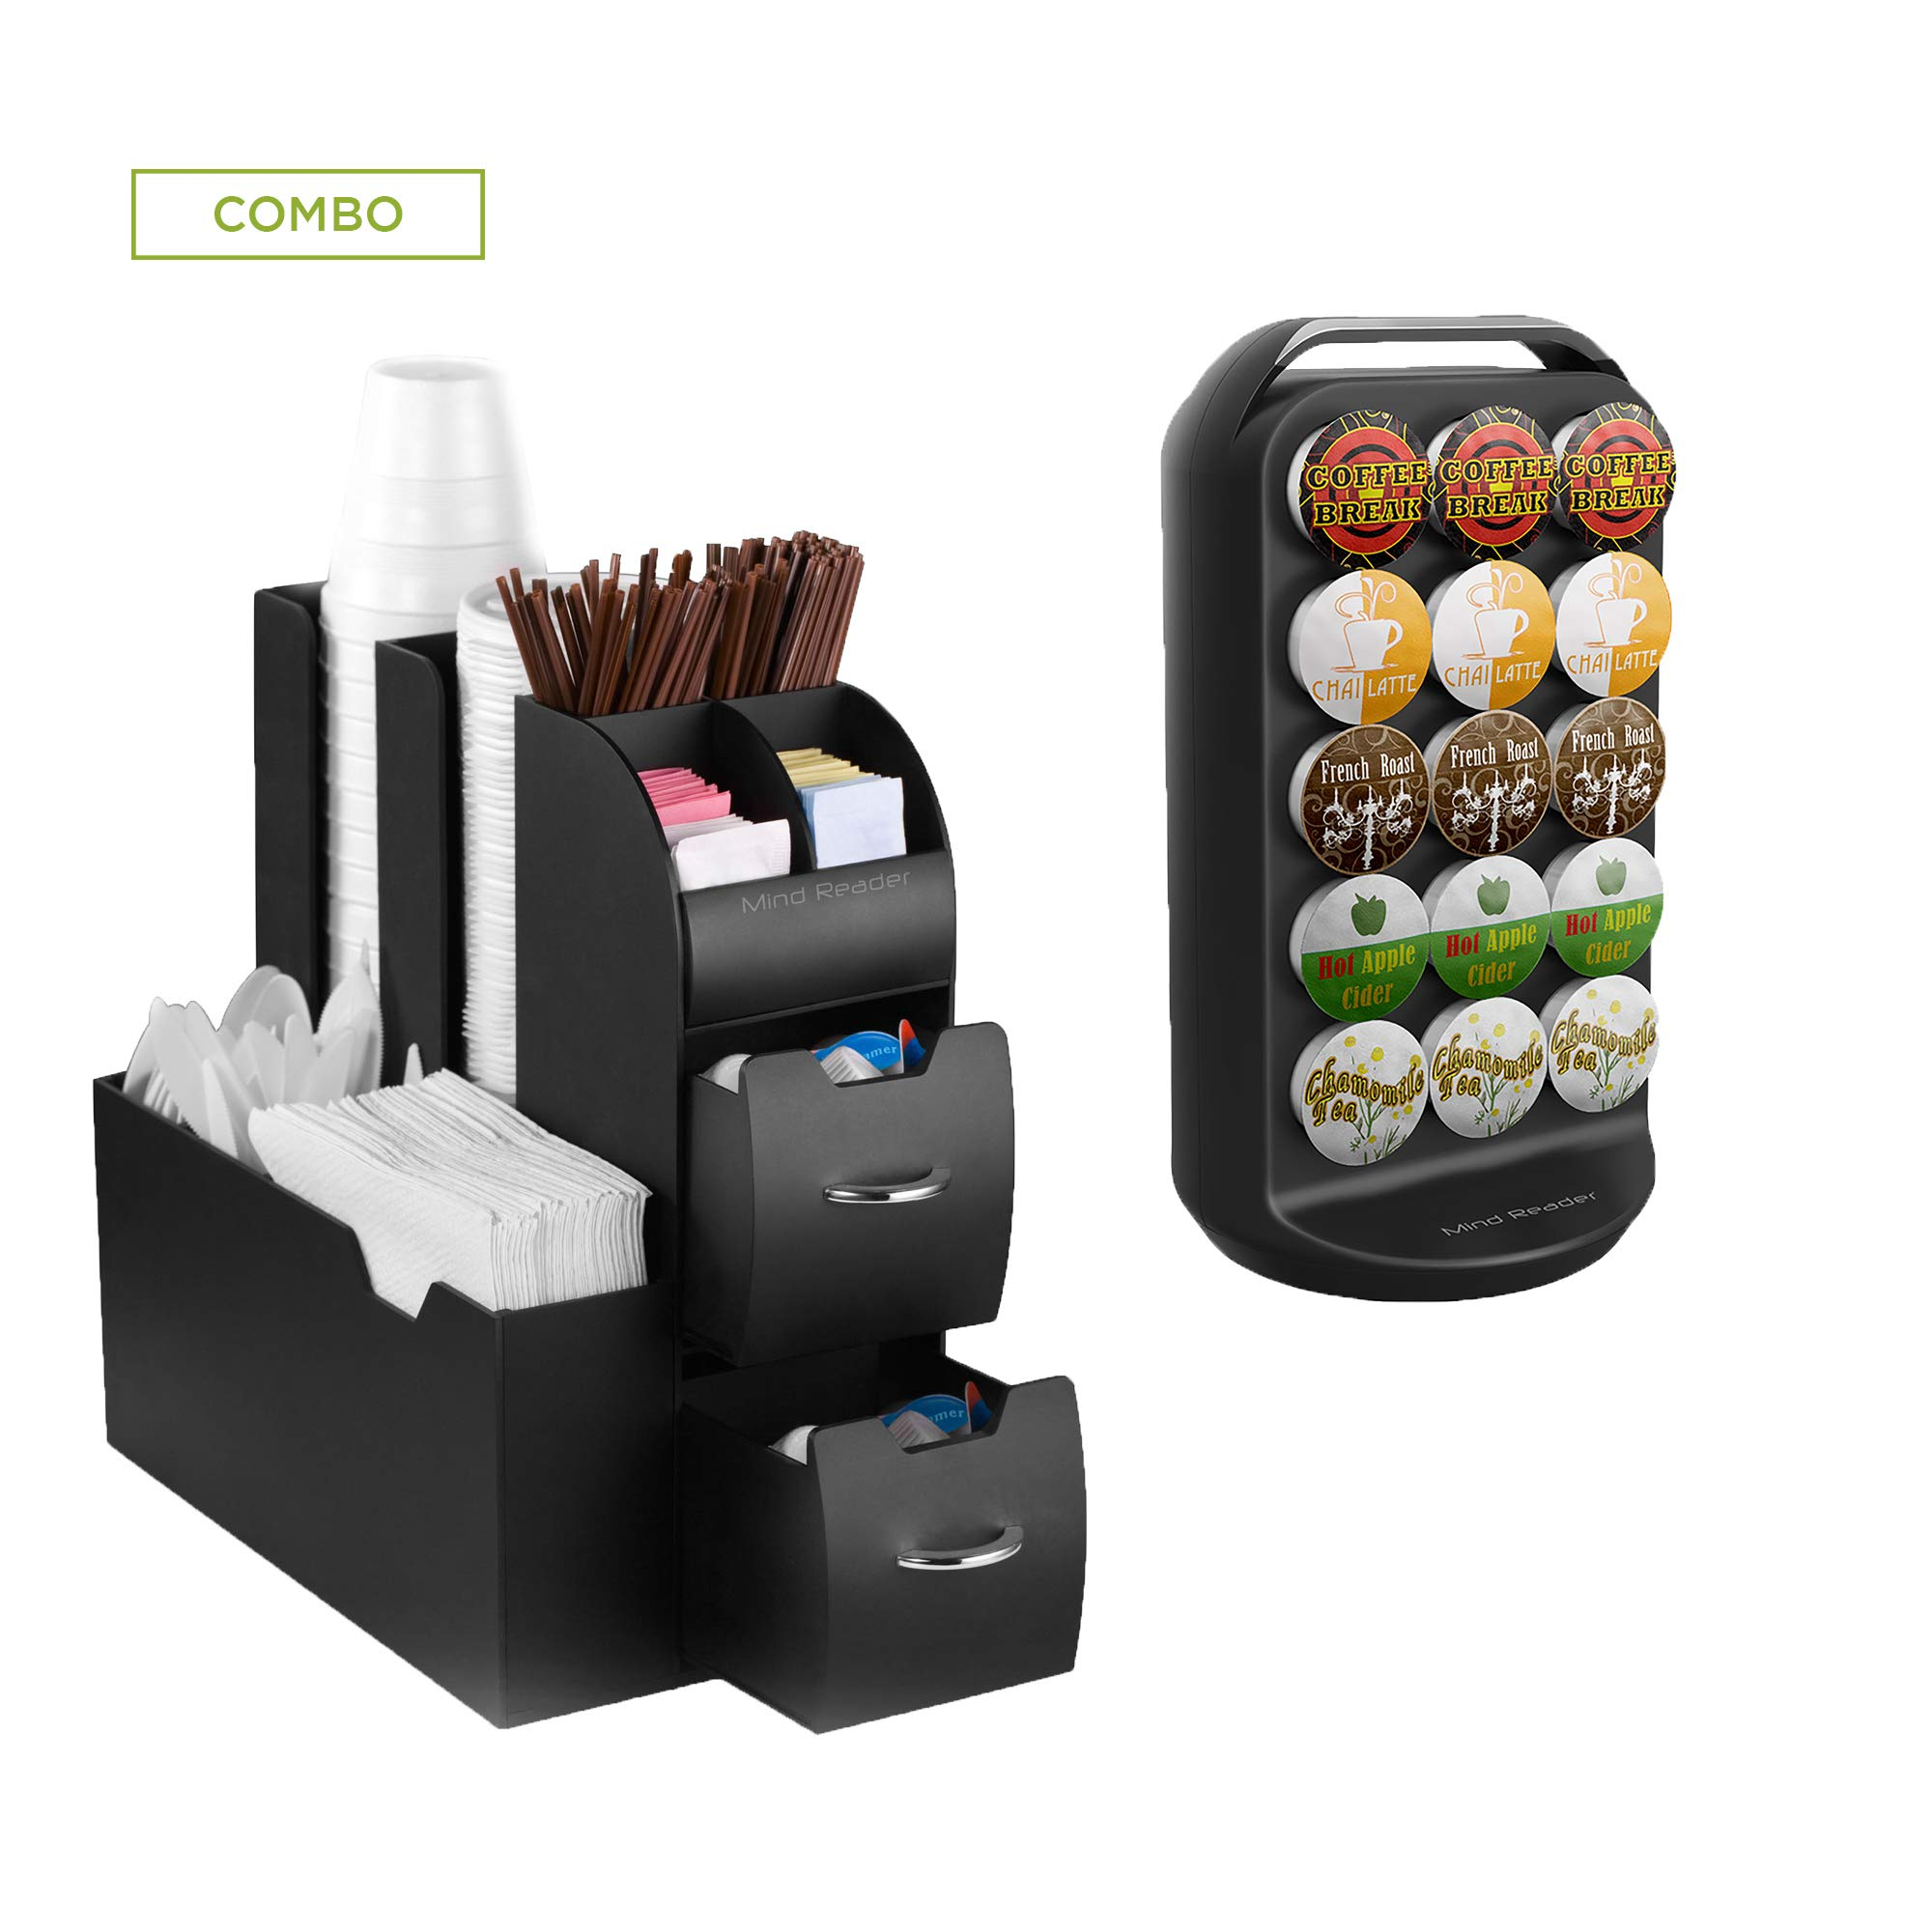 e11772dca13f1 Mind Reader CRSCAD-BLK K-Cup Carousel and Coffee Condiment Caddy Organizer,  Coffee